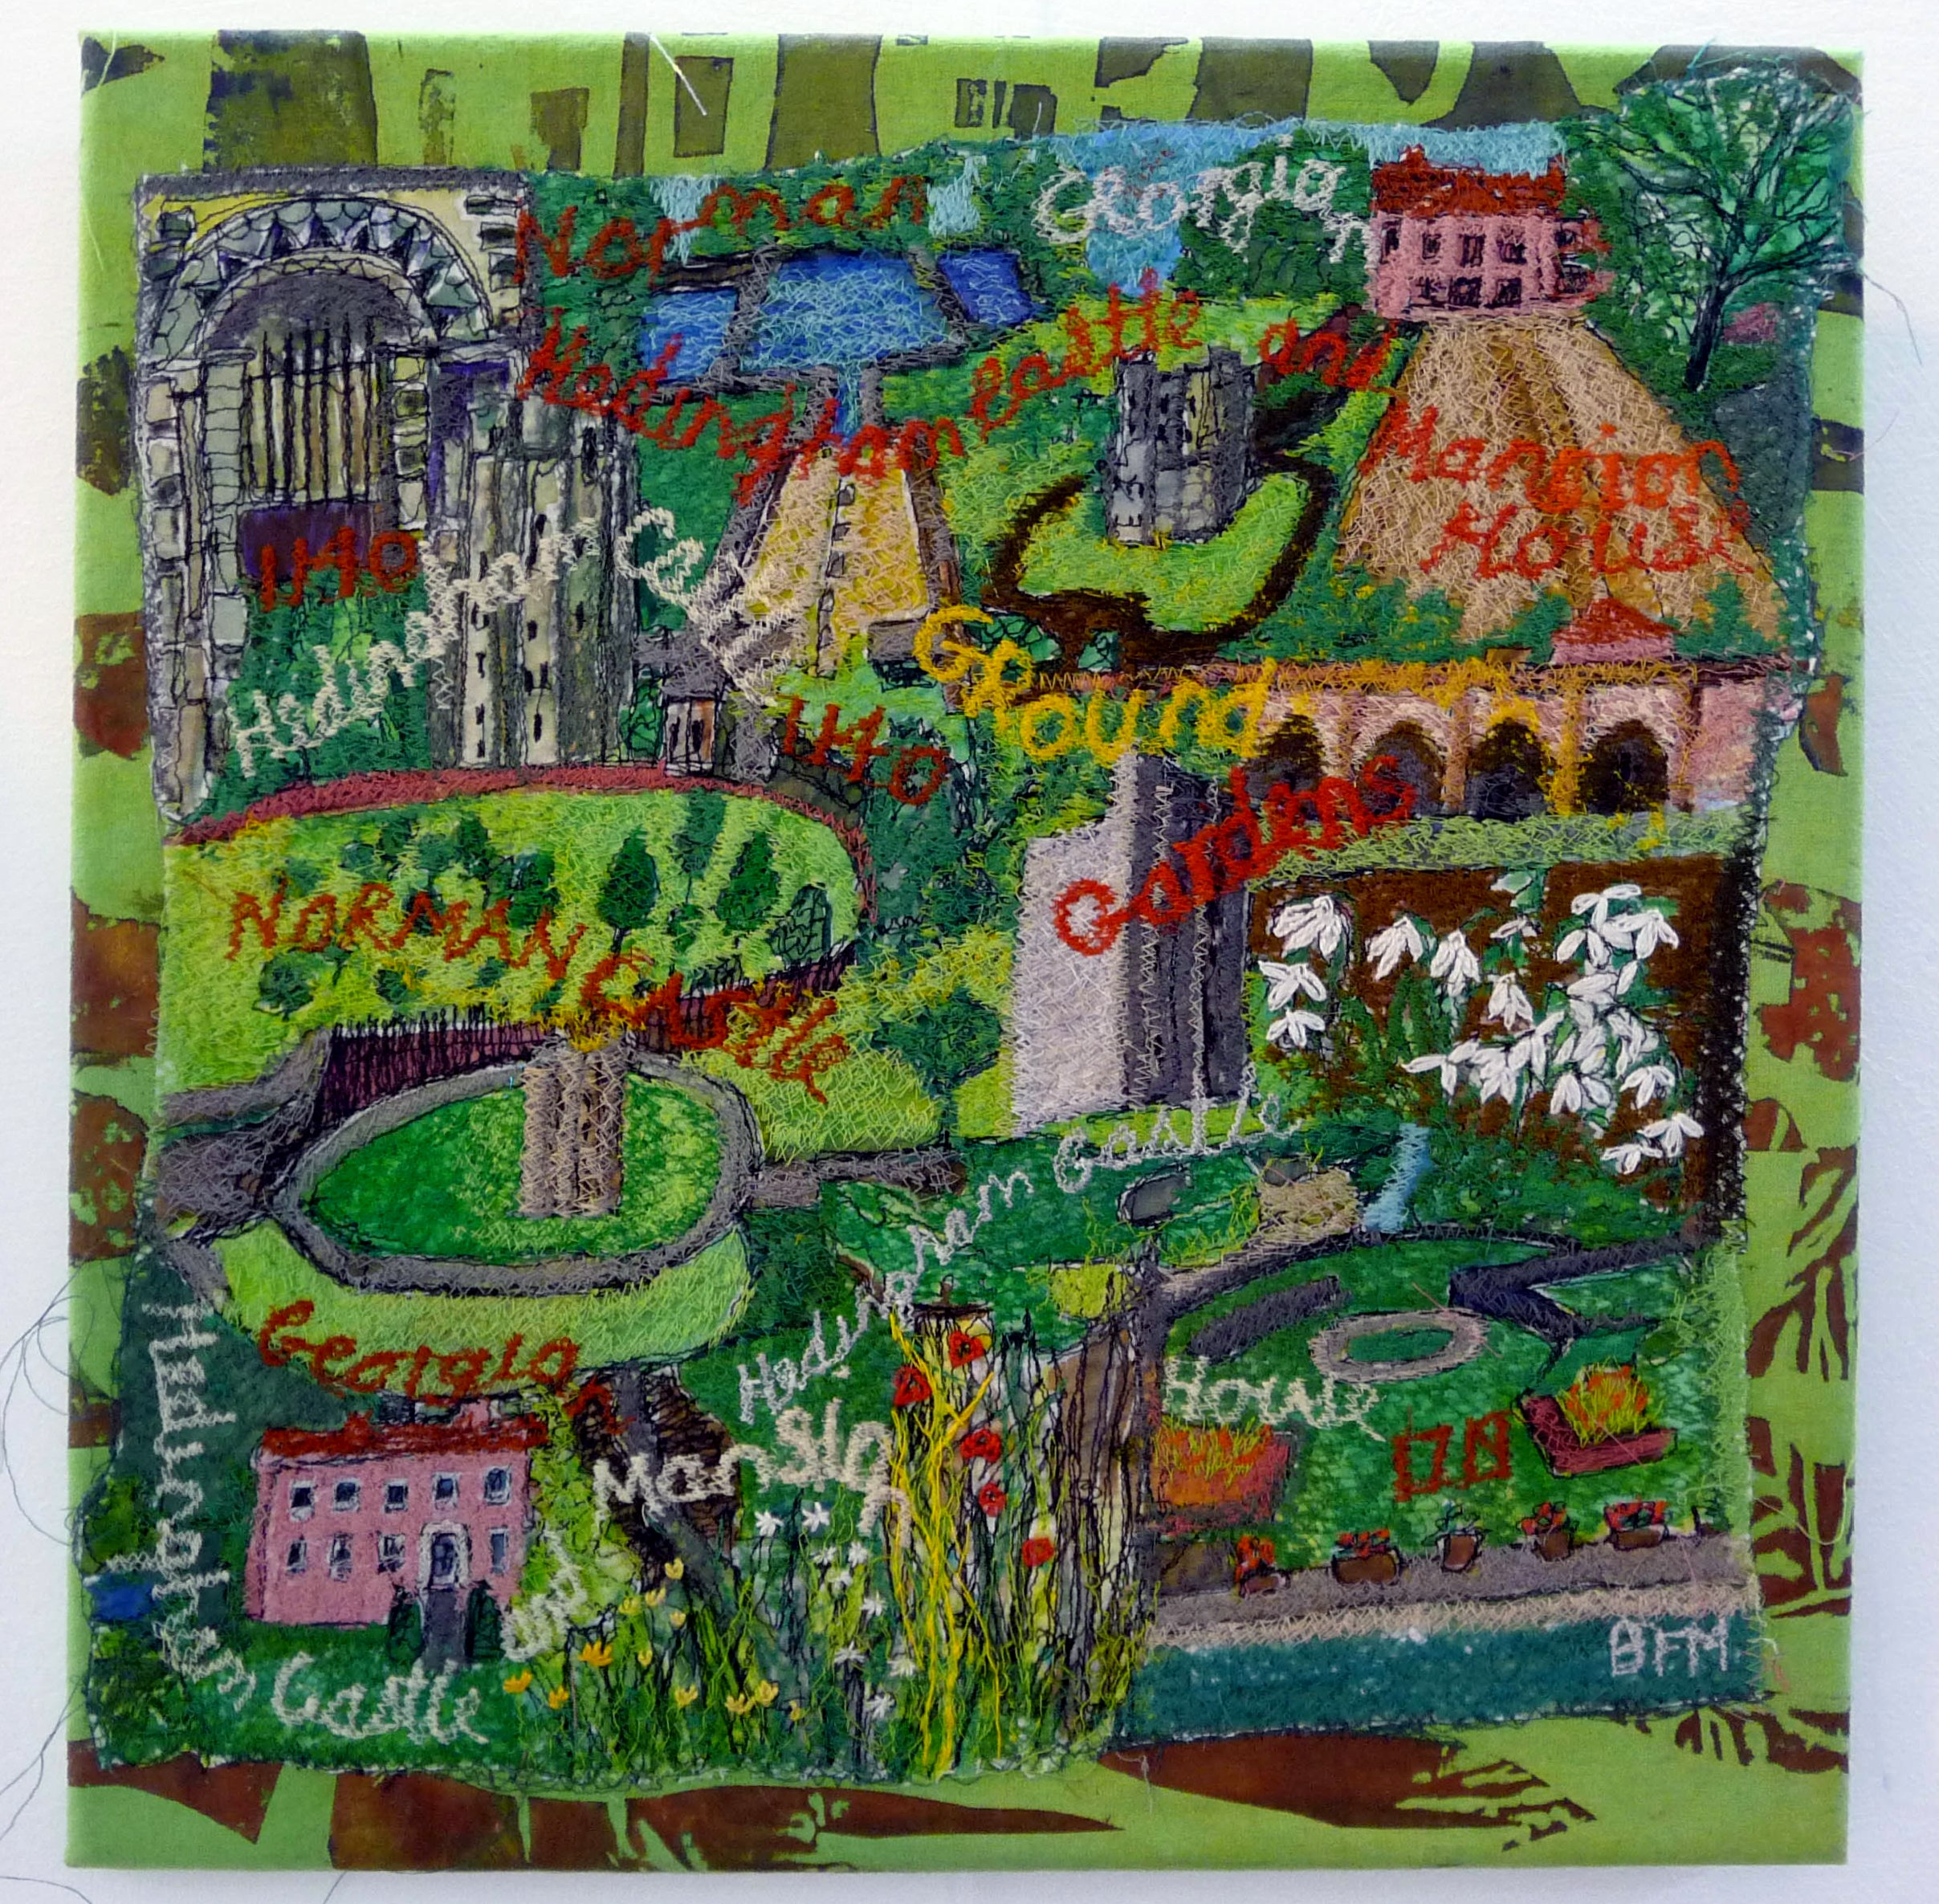 entry to Capability Brown Festival with Embroiderers' Guild, HEDINGHAM CASTLE by Betty Fraser Myerscough